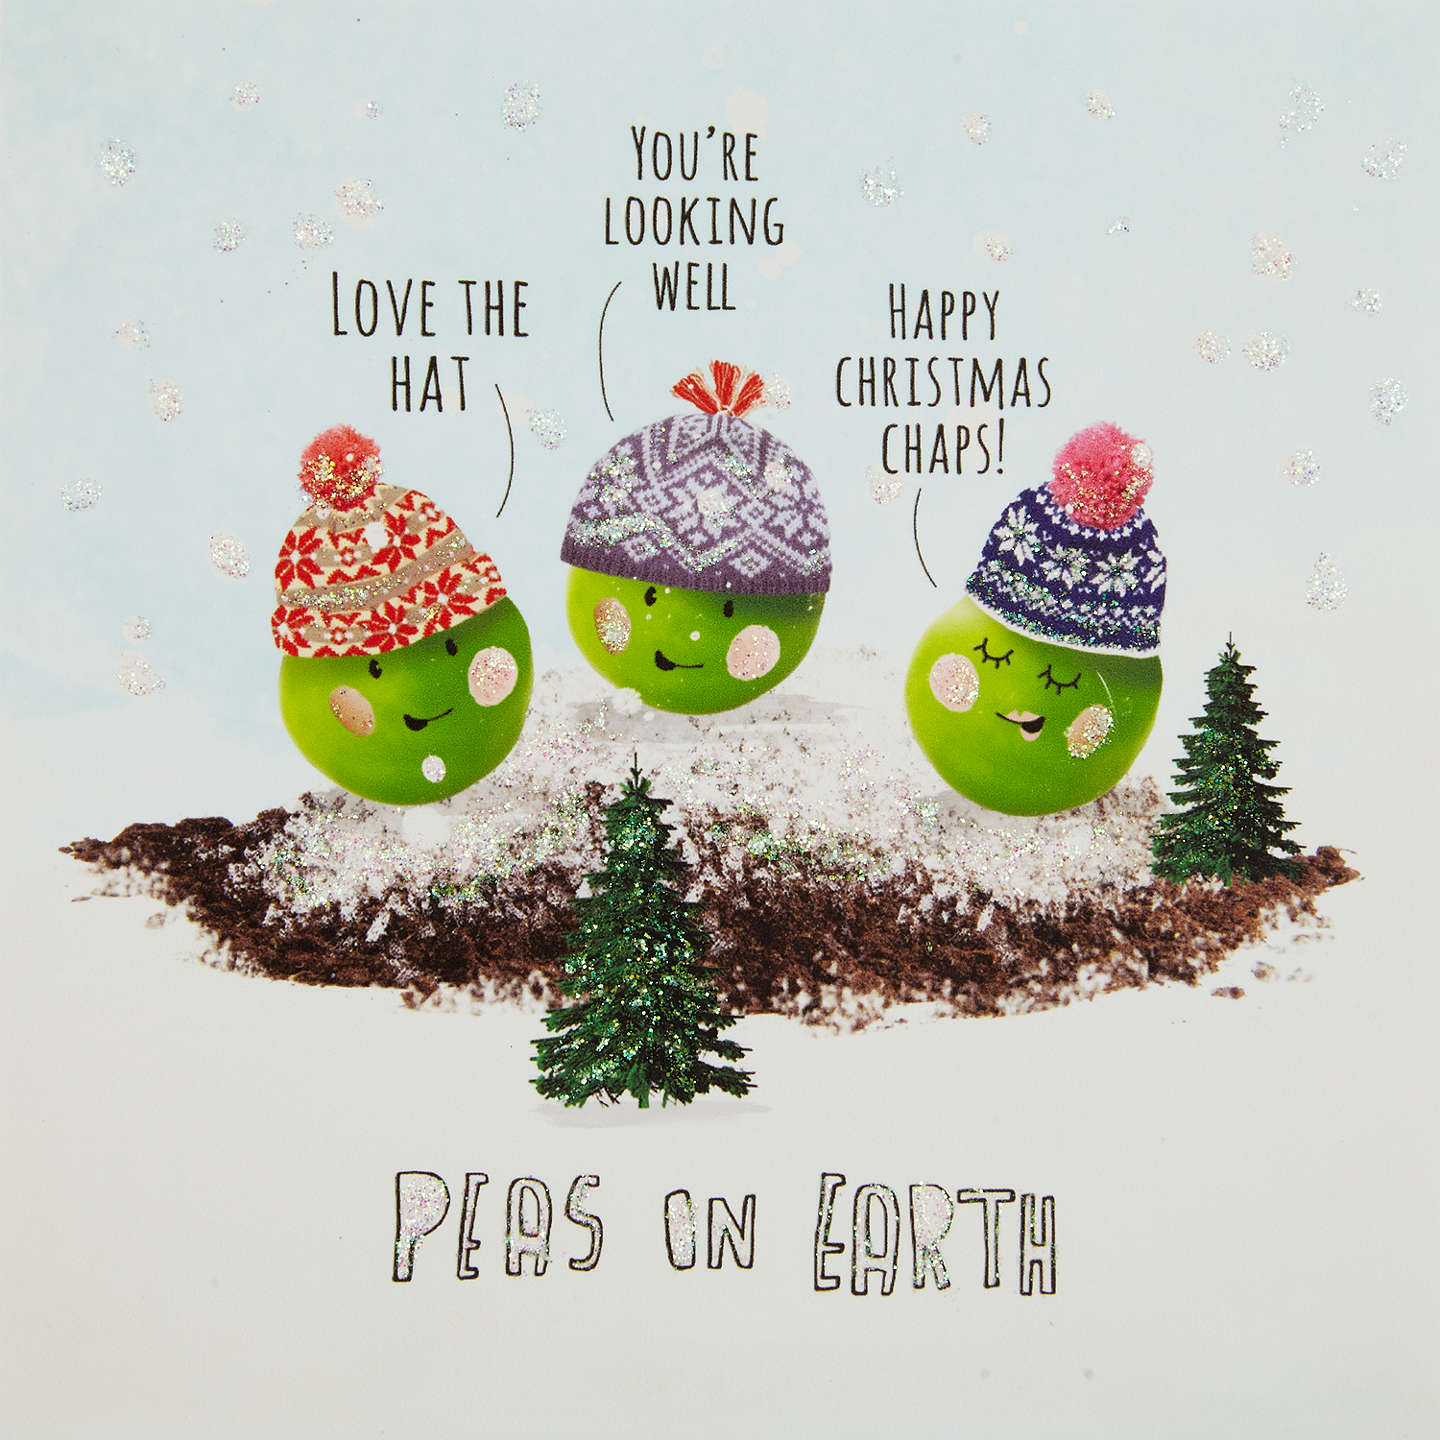 Buyjohn Lewis Peas On Earth Charity Christmas Cards, Pack Of